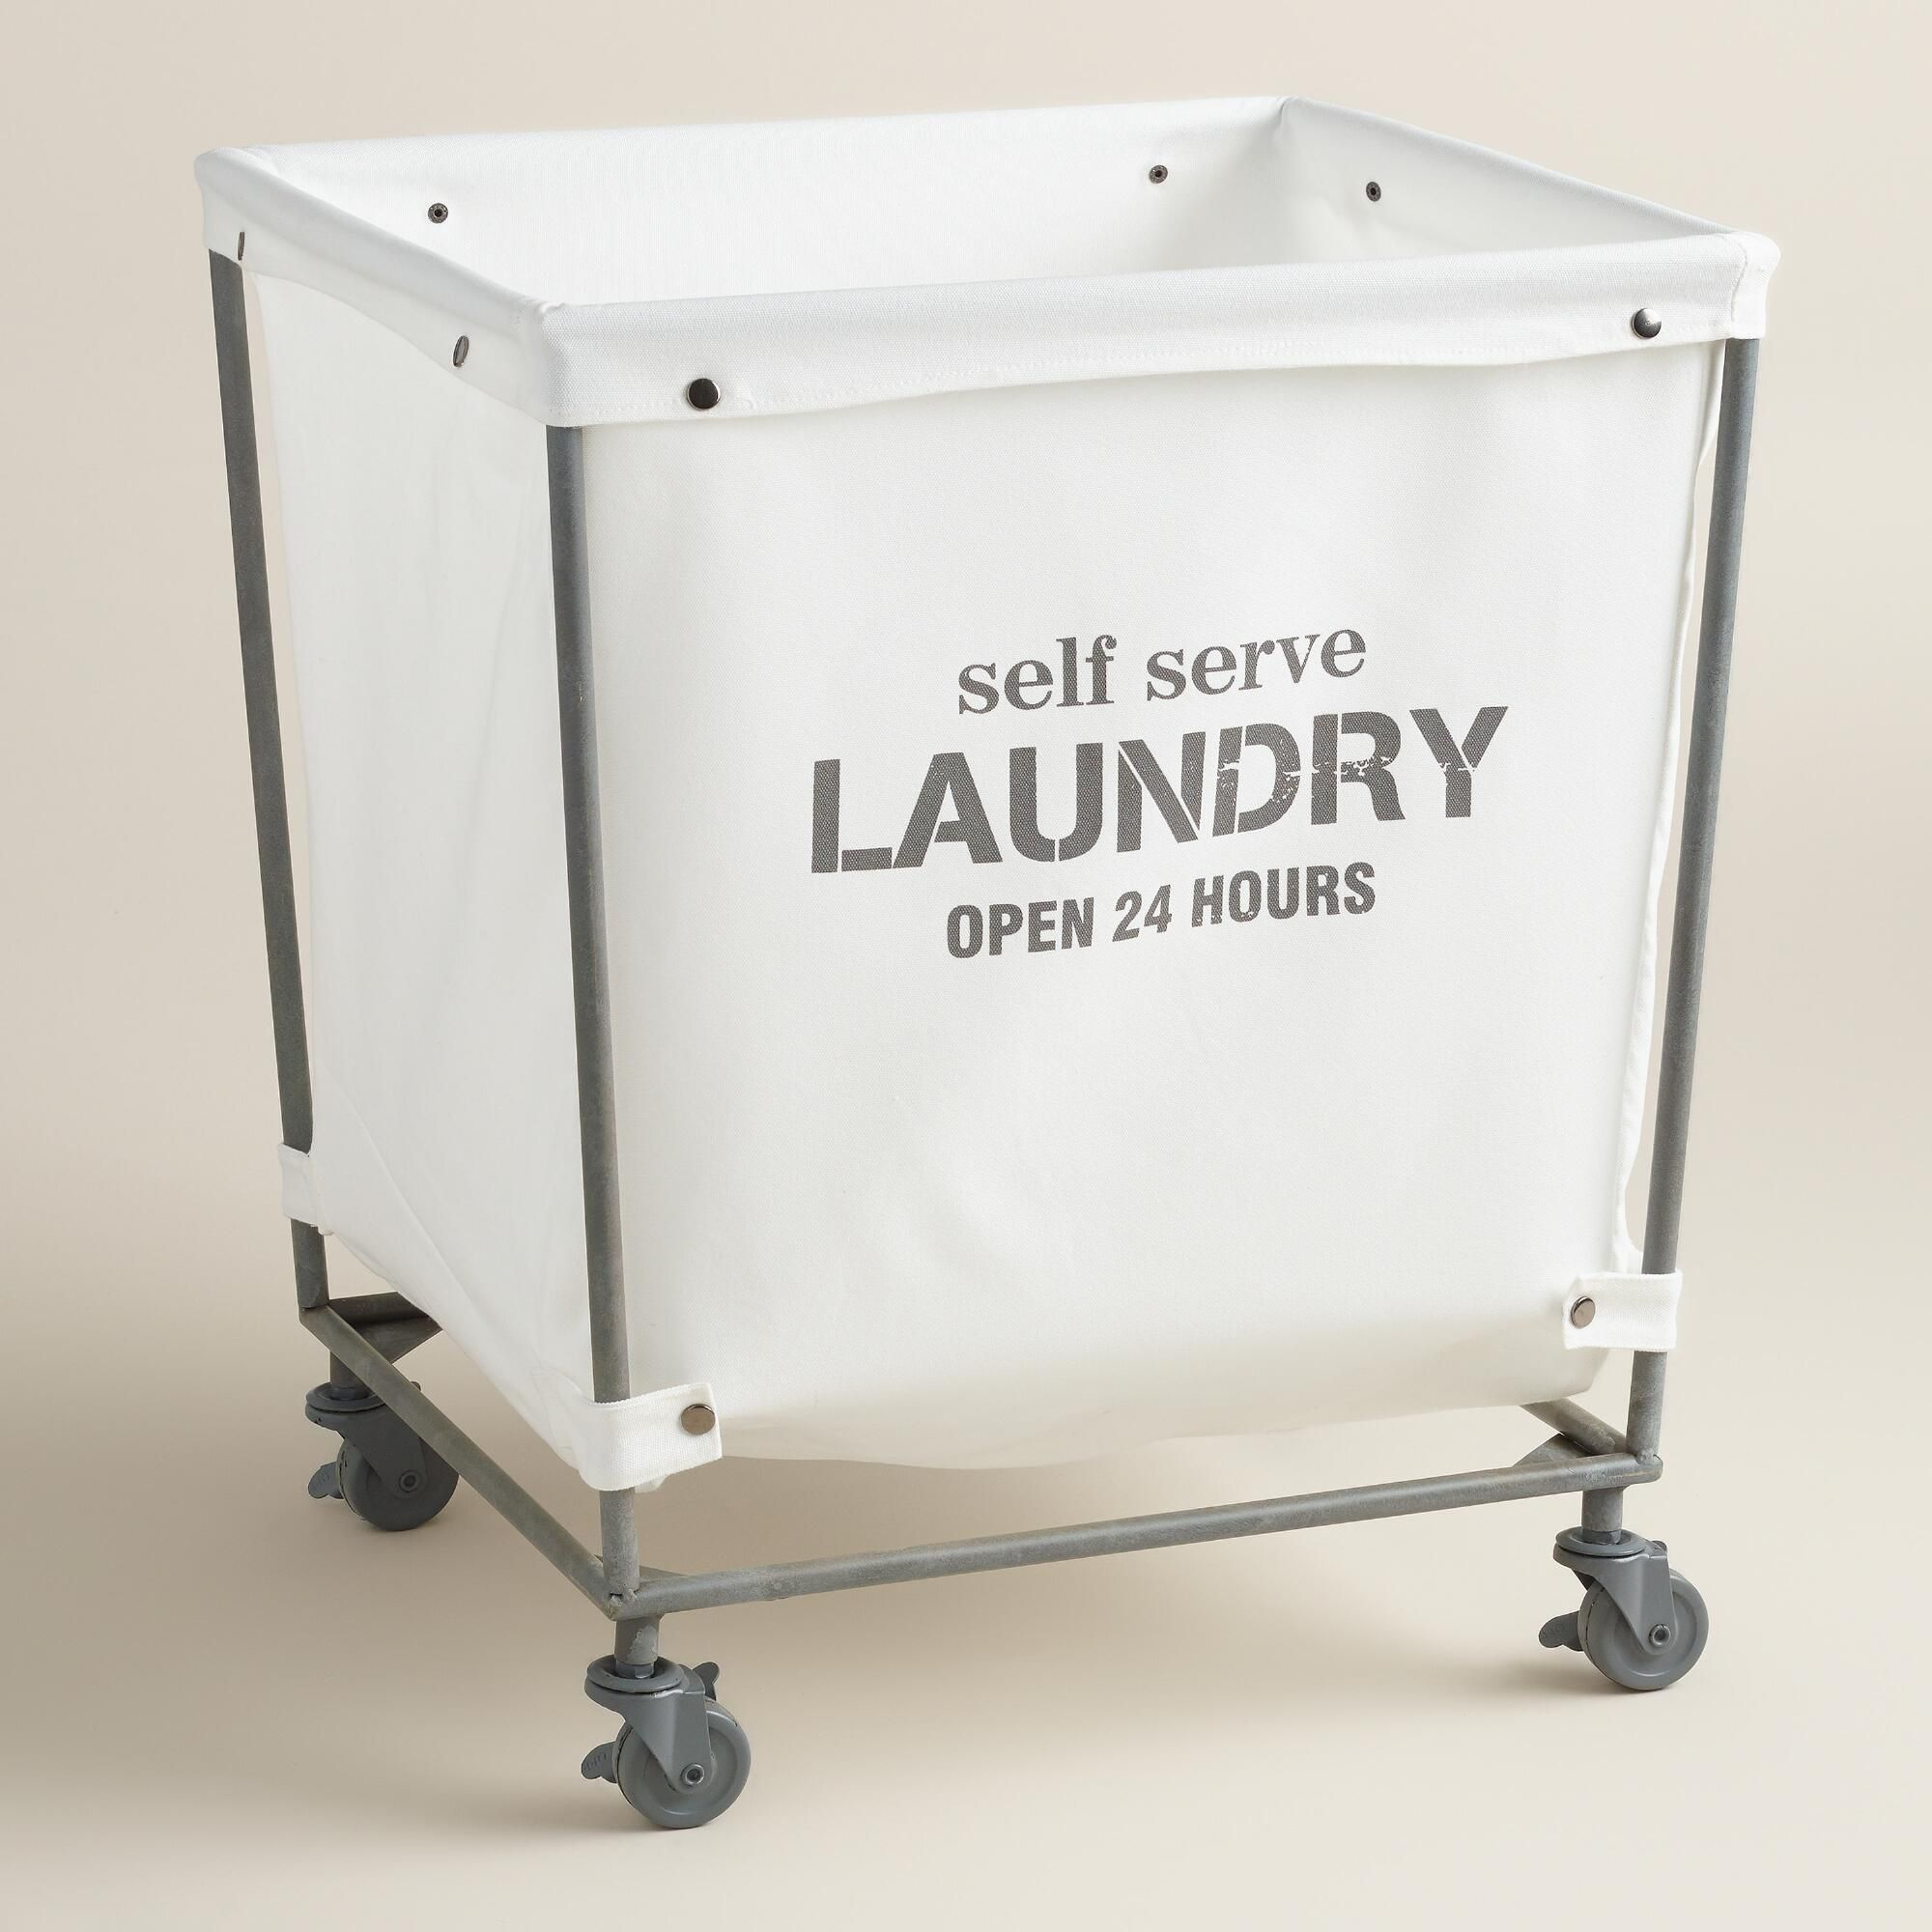 Metal Ashton Rolling Hamper Laundry Shop Laundry Basket On Wheels Laundry